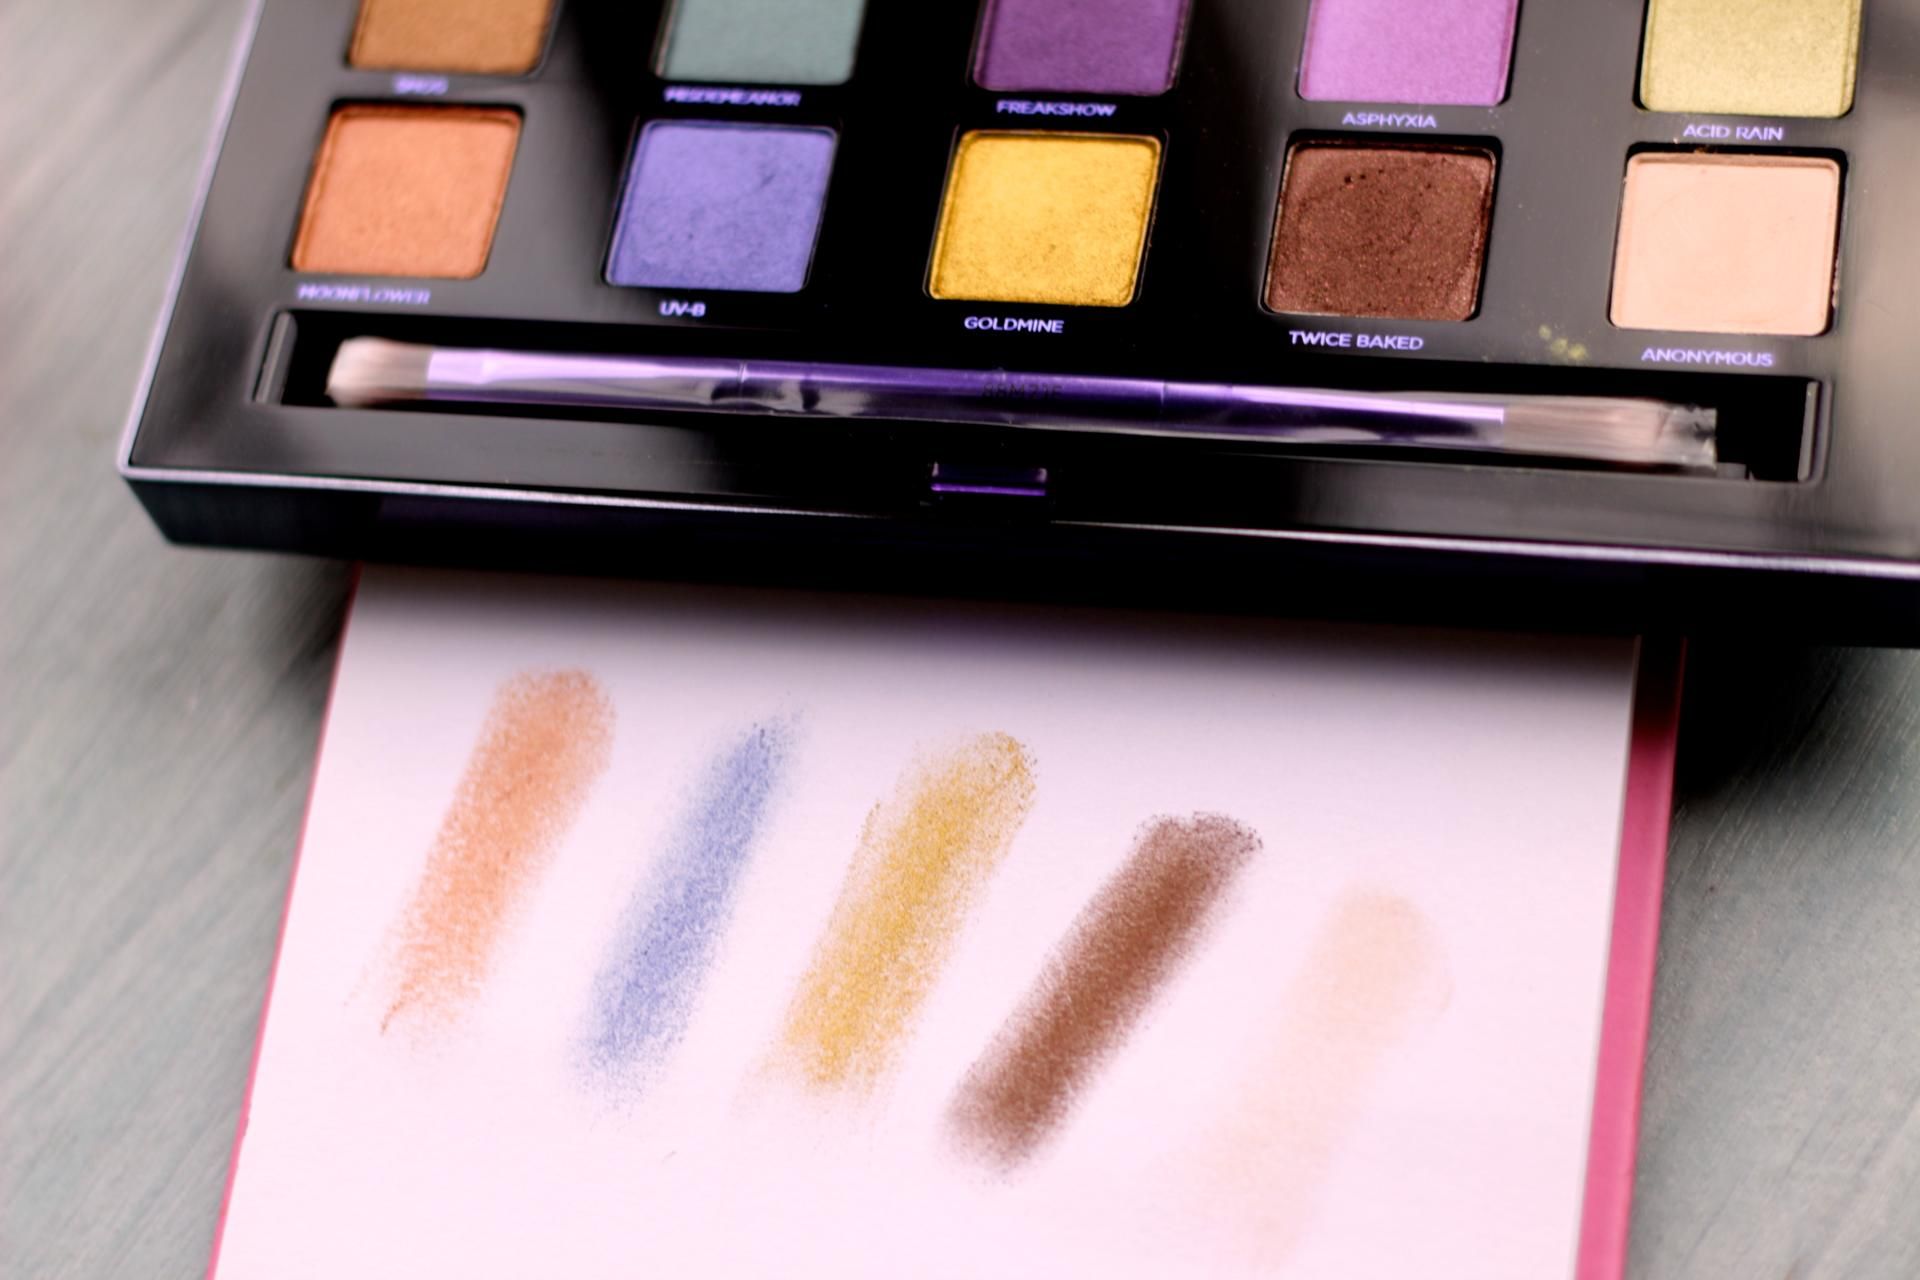 Urban Decay XX Vice Reloaded Eyeshadow Palette